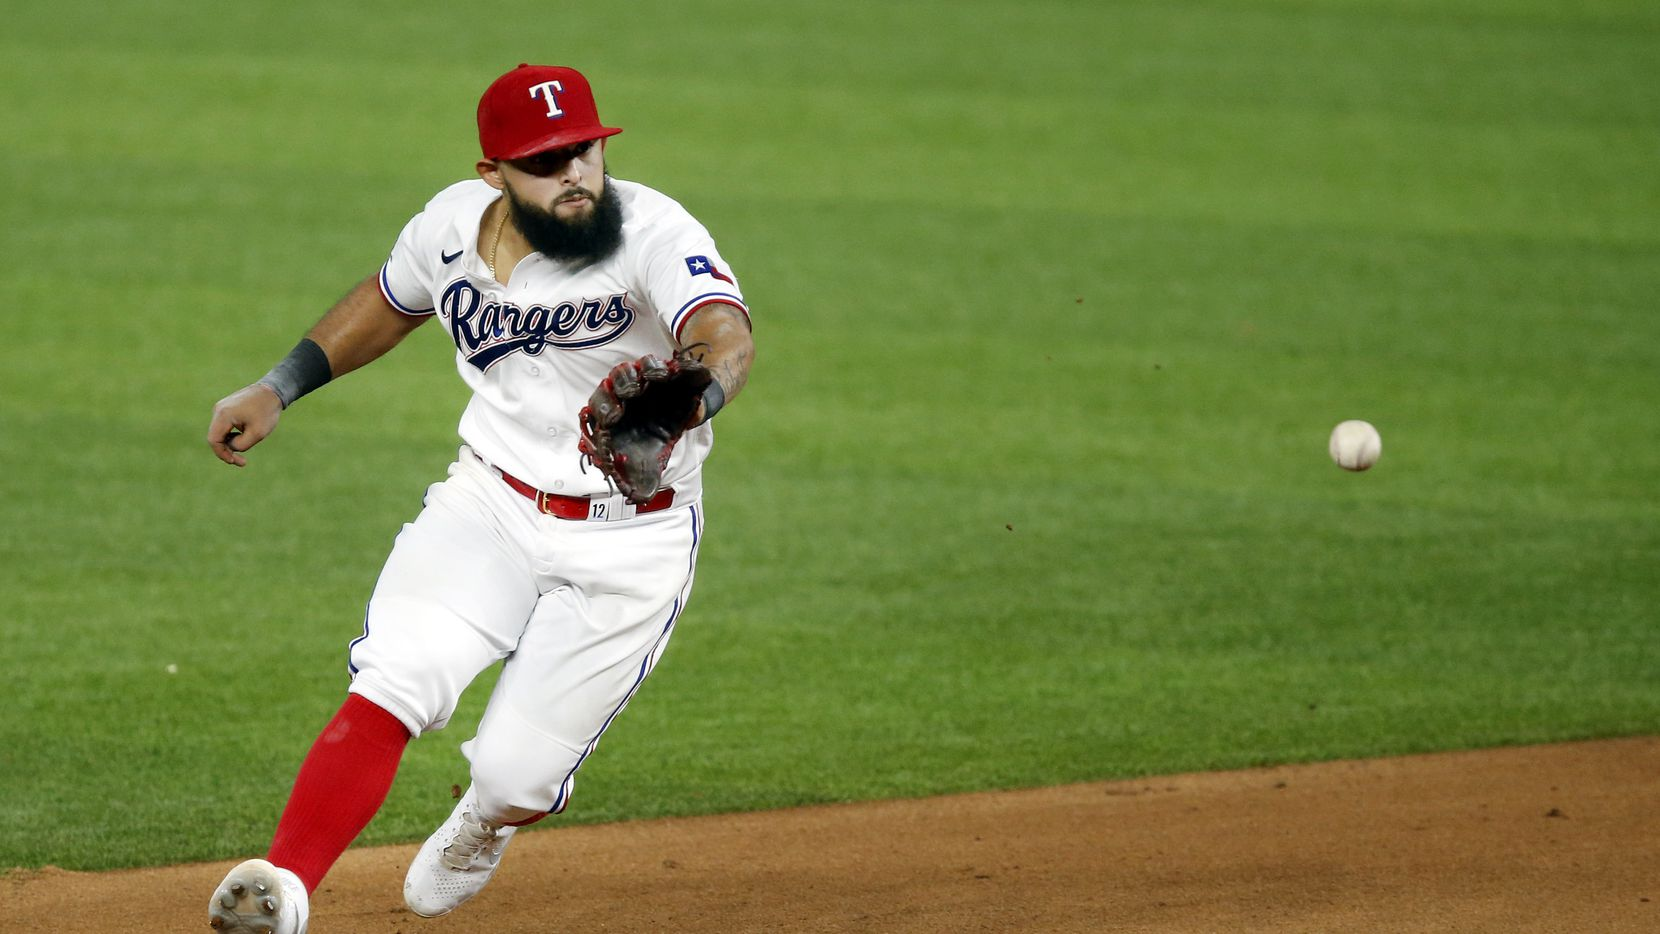 Texas Rangers second baseman Rougned Odor (12) fields a ball hit by Seattle Mariners Austin Nola and makes the out at first during the eighth inning at Globe Life Field in Arlington, Tuesday, August 11, 2020.